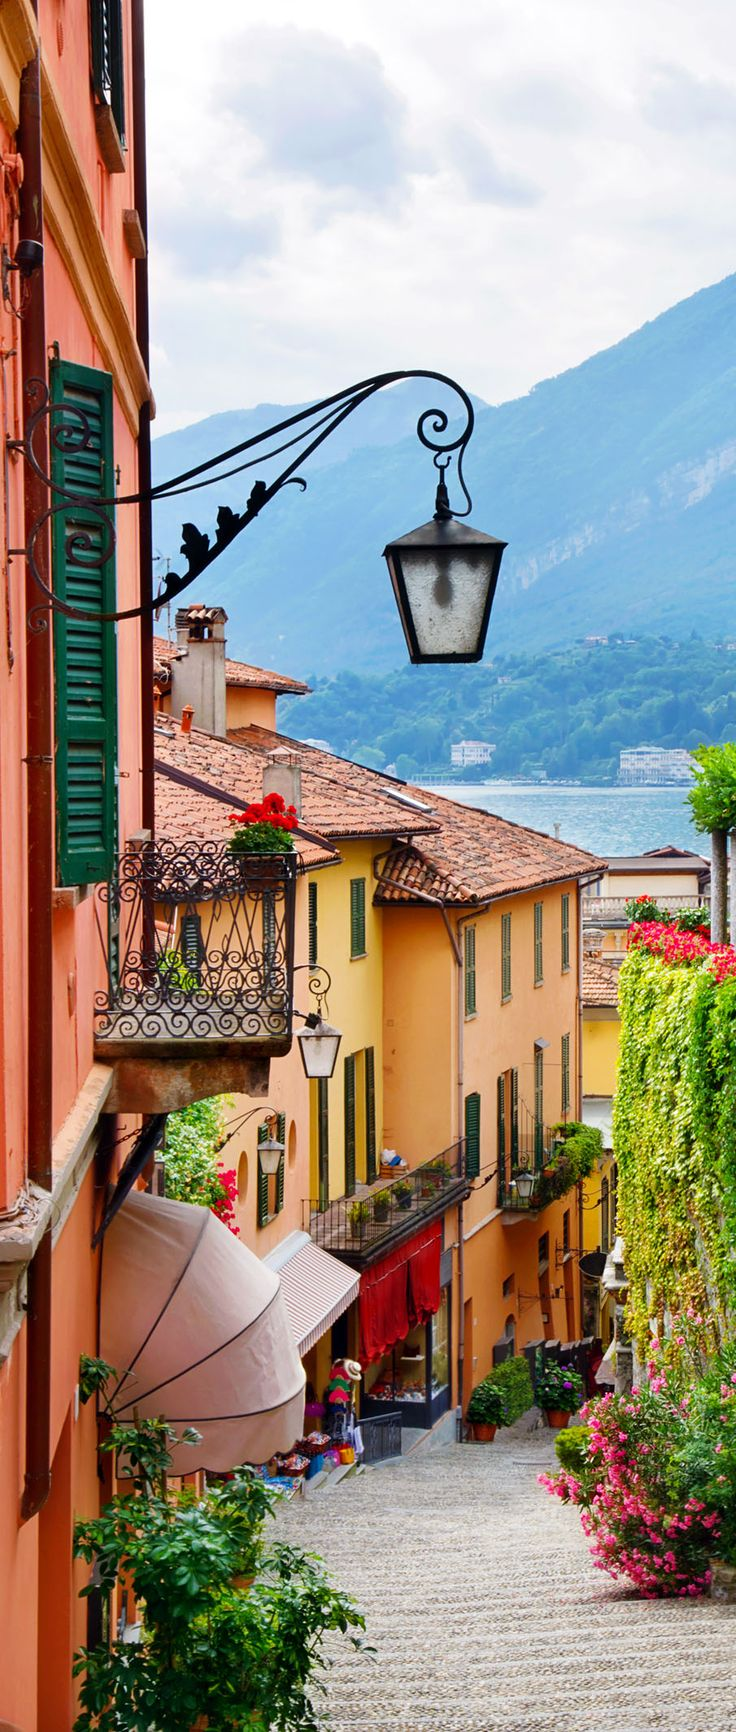 Emmy DE * Bellagio, Lake Como. Italy